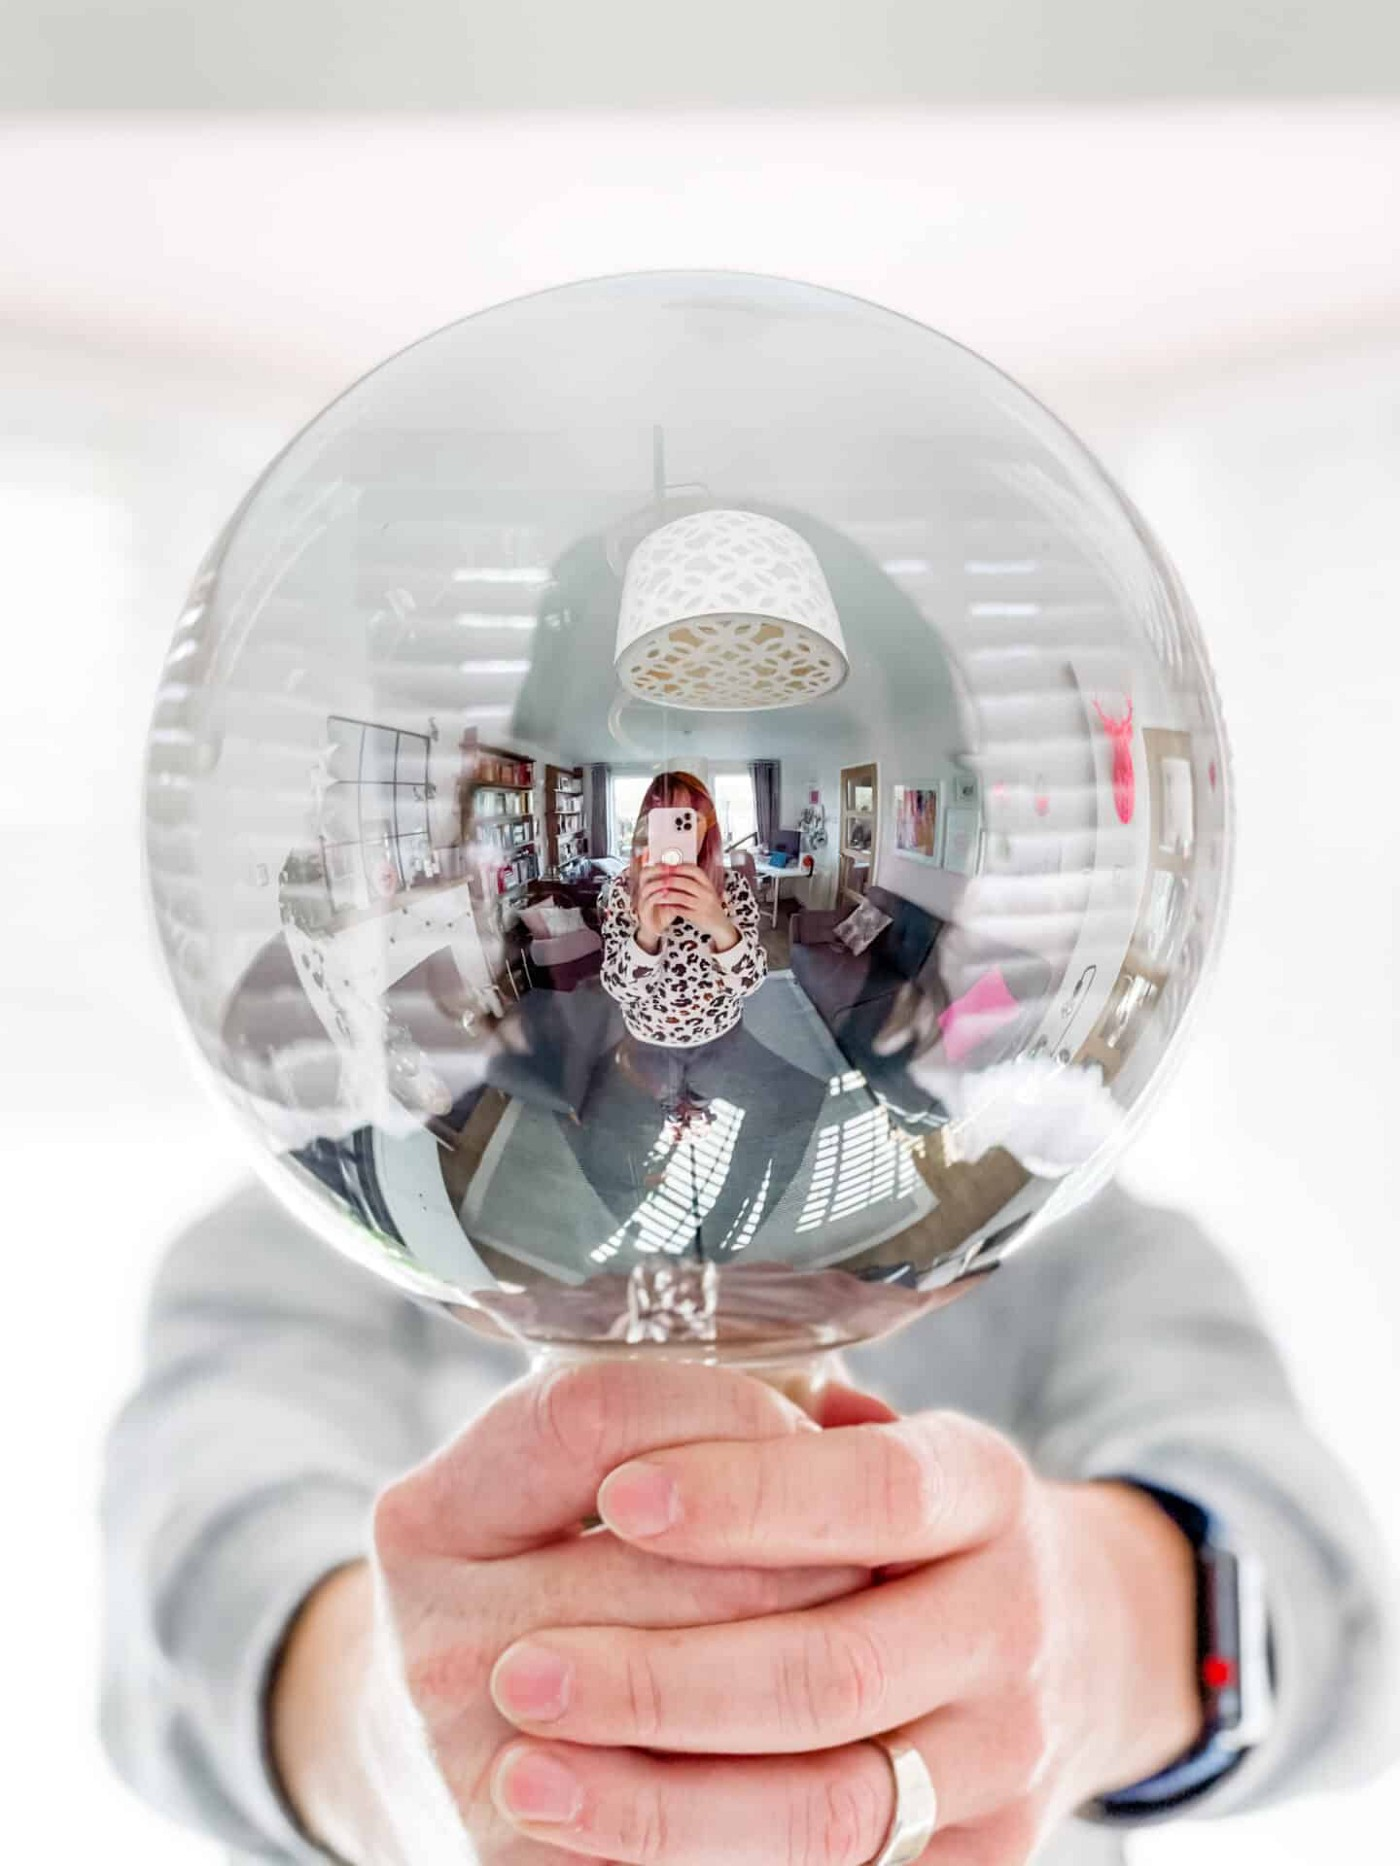 A man holds up a giant LED bulb as a woman takes a picture, you can see the reflection of a lounge in the bulb